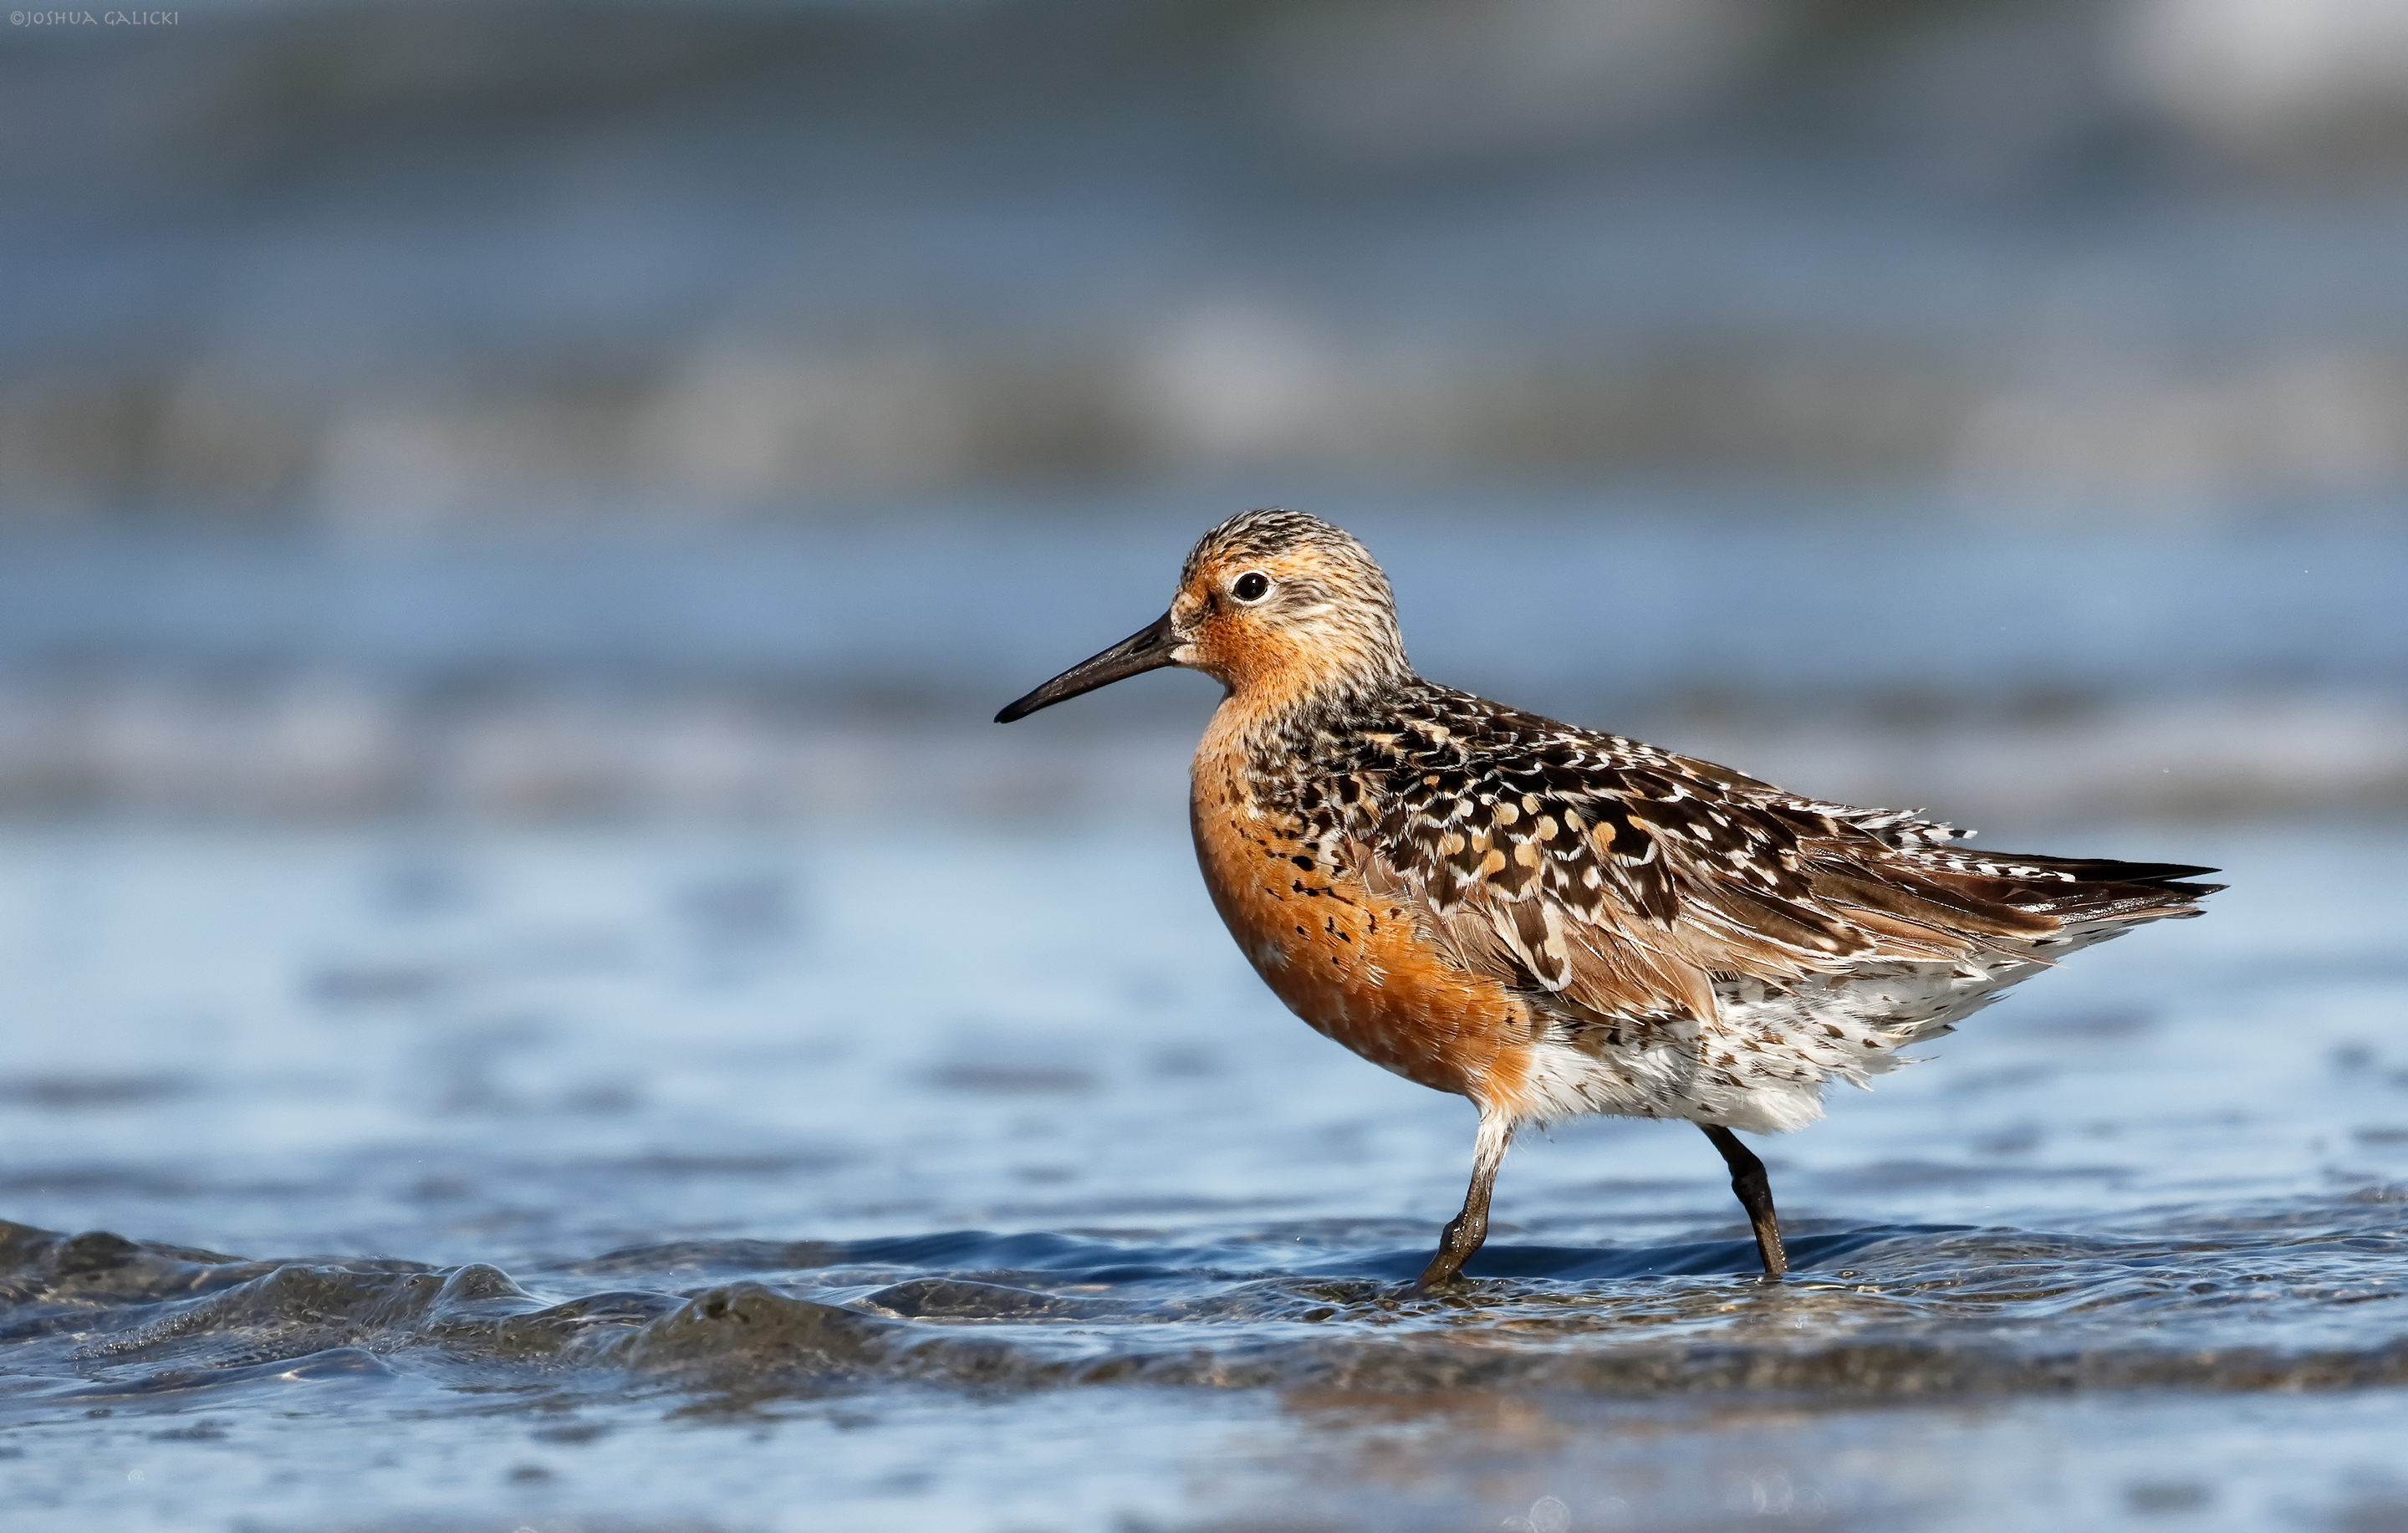 New online resource aims to help at-risk shorebirds